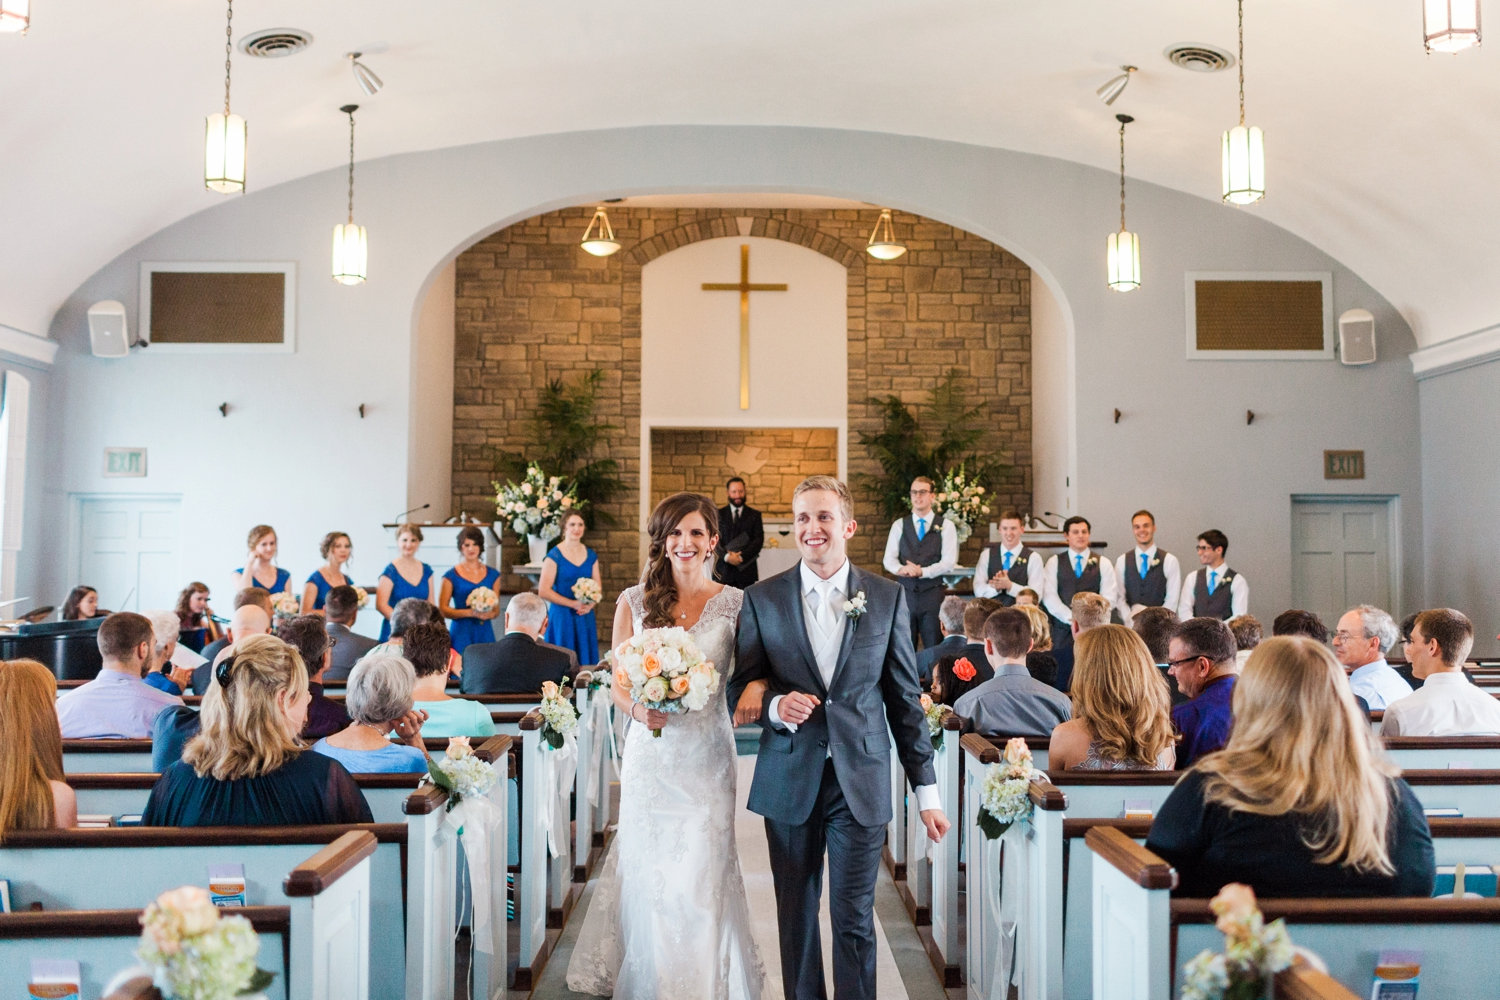 NCR_Country_Club_Kettering_Ohio_Wedding_Photography_Chloe_Luka_Photography_7146.jpg